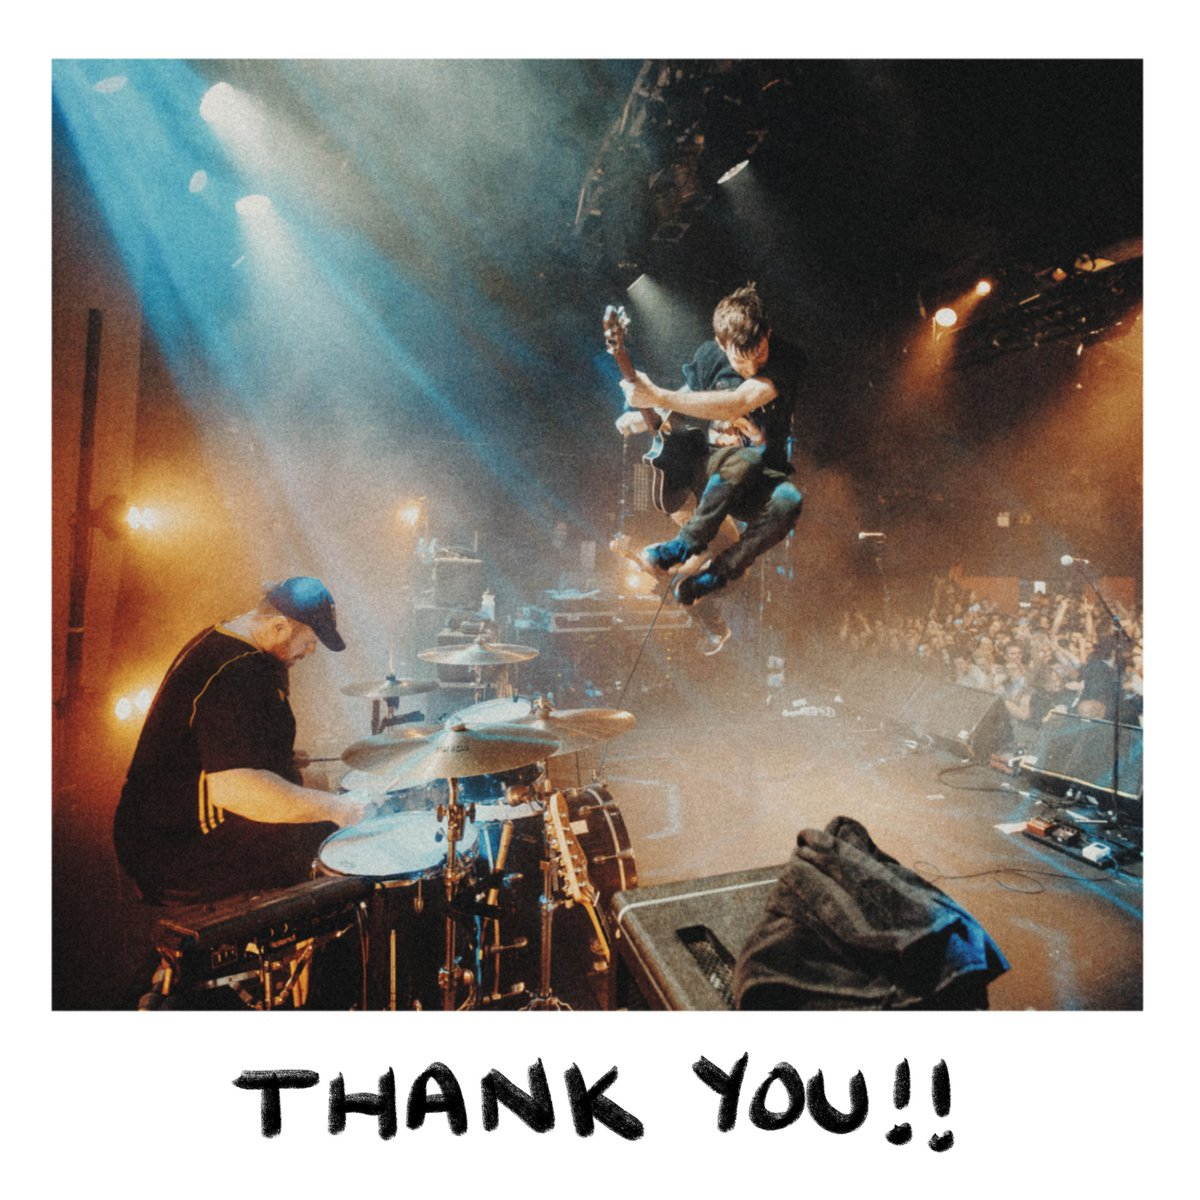 Together we've raised over $27,000 USD, split between Critical Resistance (@C_Resistance) and Breakaway Addiction Services (@bas_toronto). Thank you so much to everyone who bought the live record. We are floored, and extremely grateful for the support.